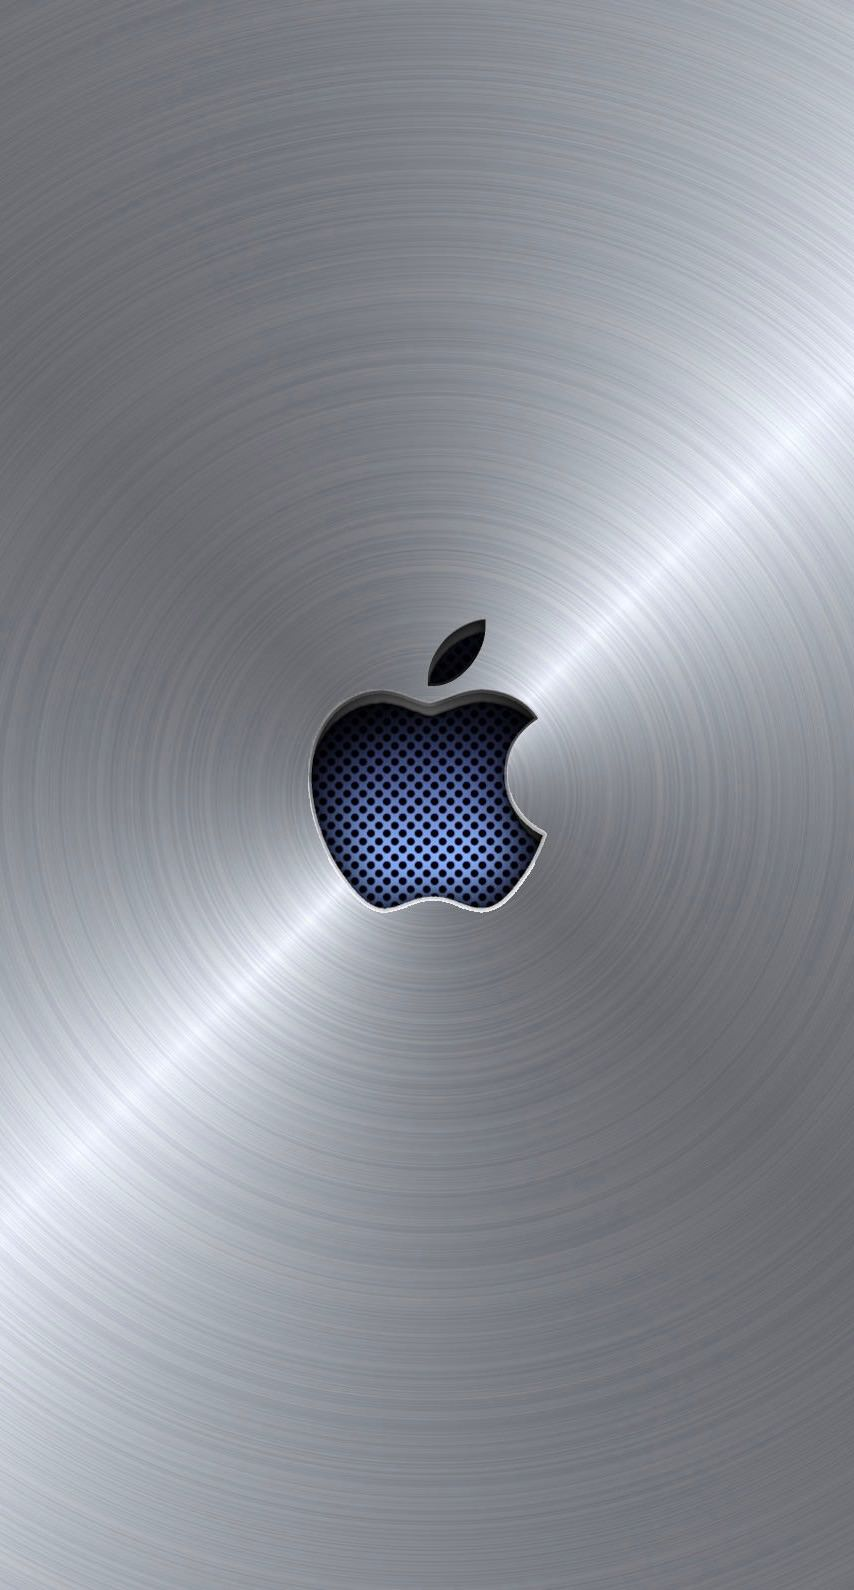 Apple logo cool blue silver | wallpaper.sc iPhone6s